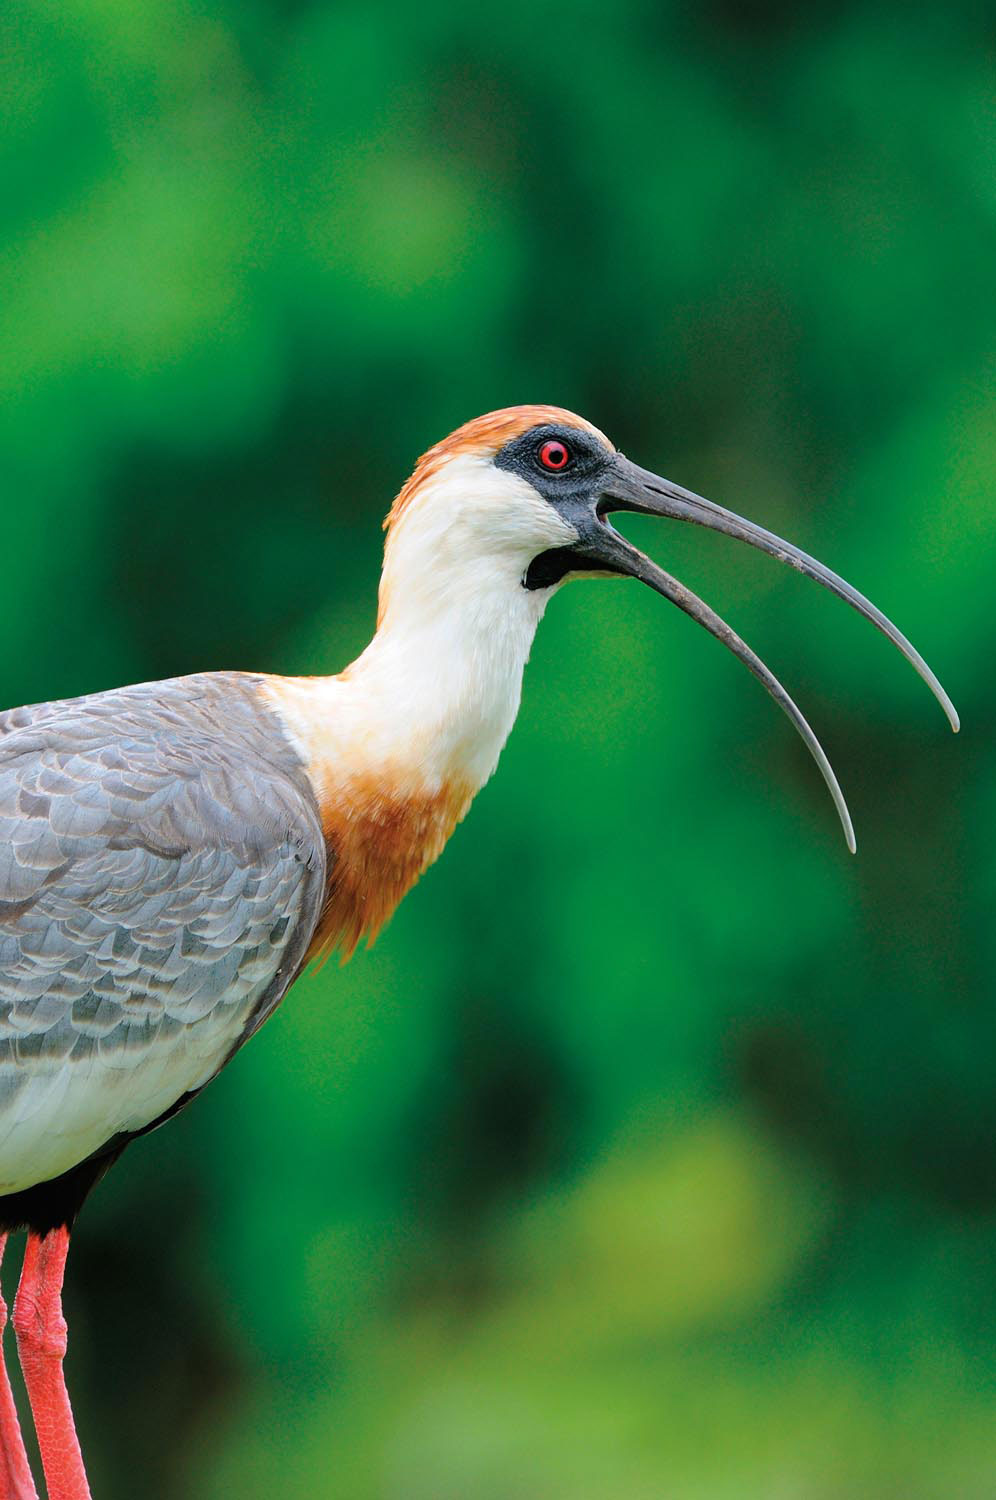 A Buff-necked Ibis (Theristicus caudatus), one of the numerous bird species found in Guyana's Rupununi. Photo by Malcolm Schuyl/Alamy Stock Photo